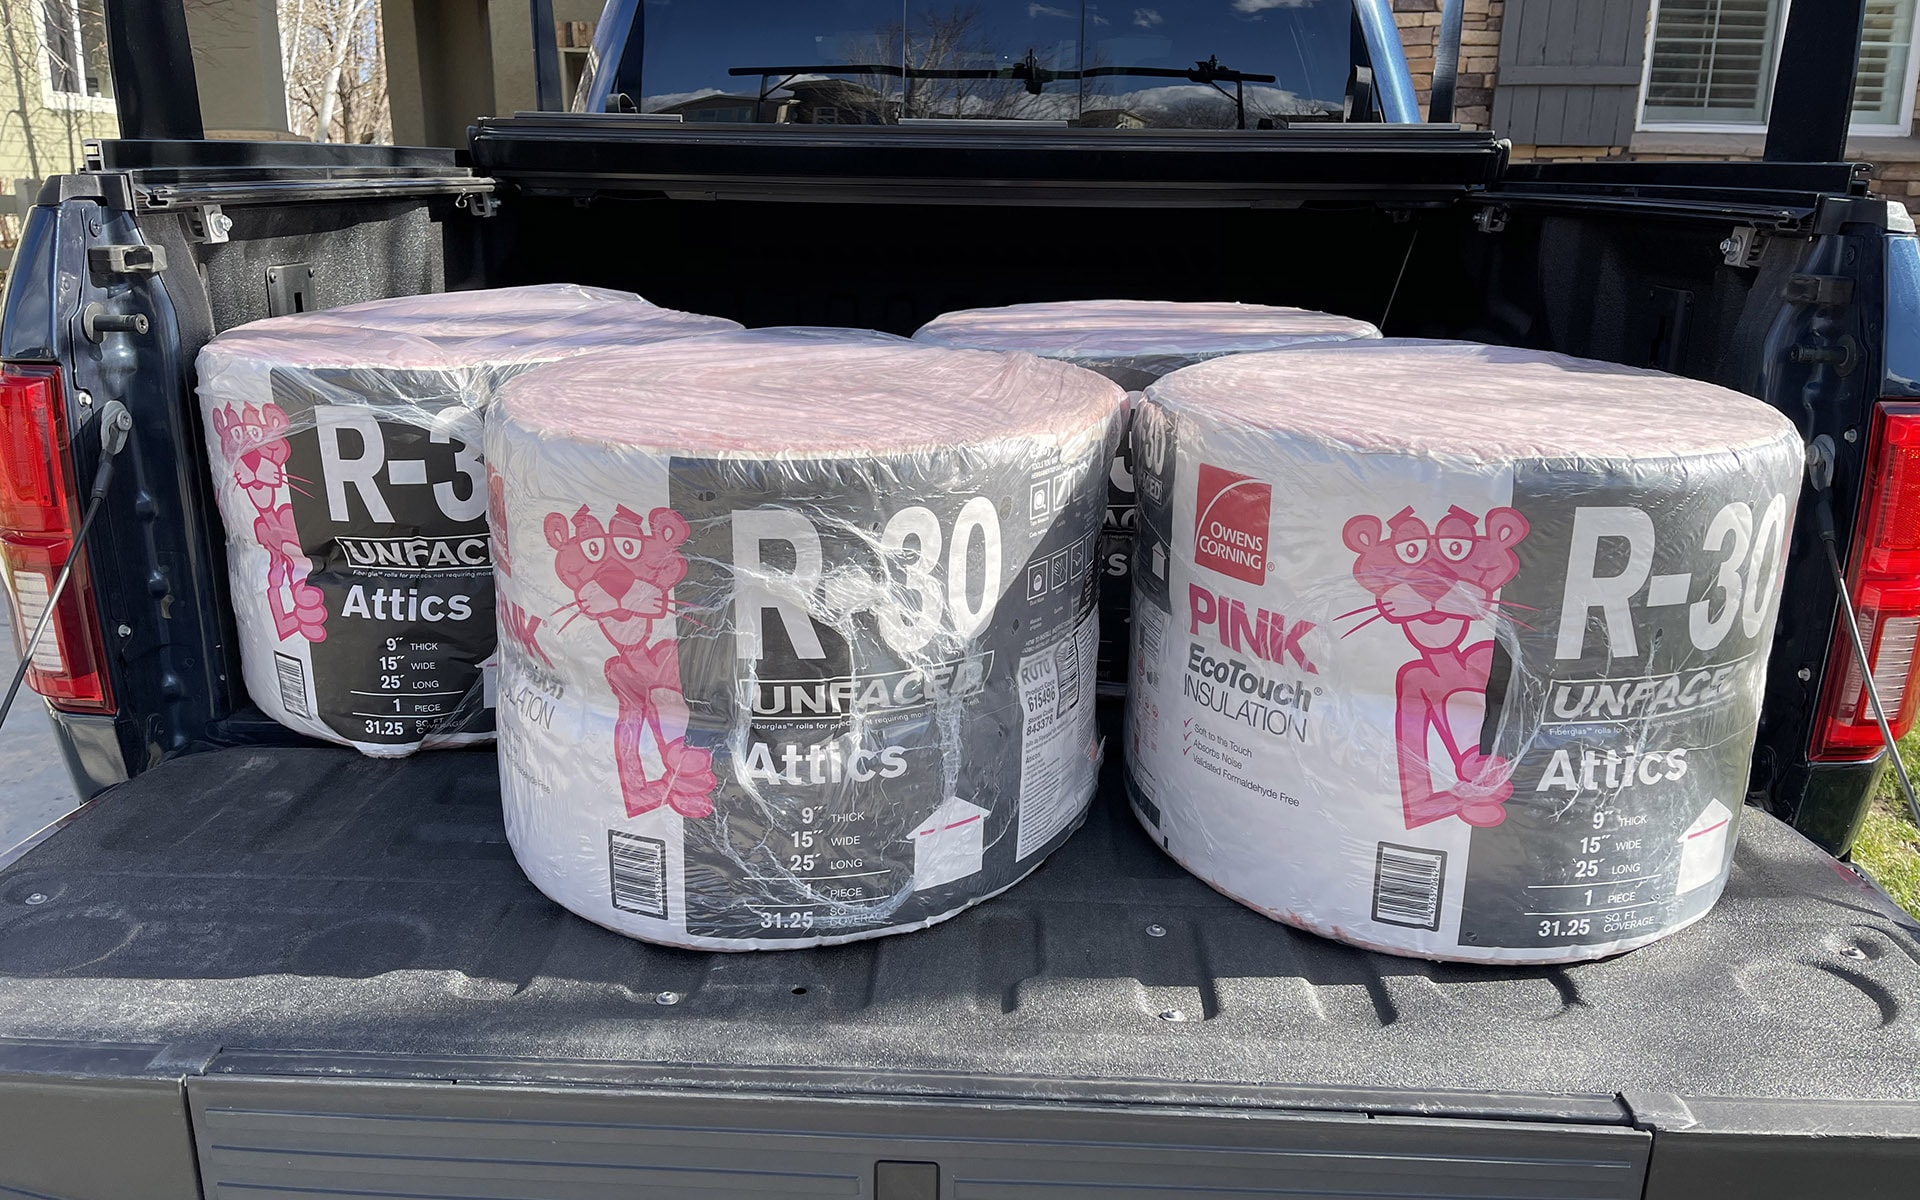 4 rolls of Owens Corning R-30 insulation in the back of a navy pickup truck in Broomfield, Colorado